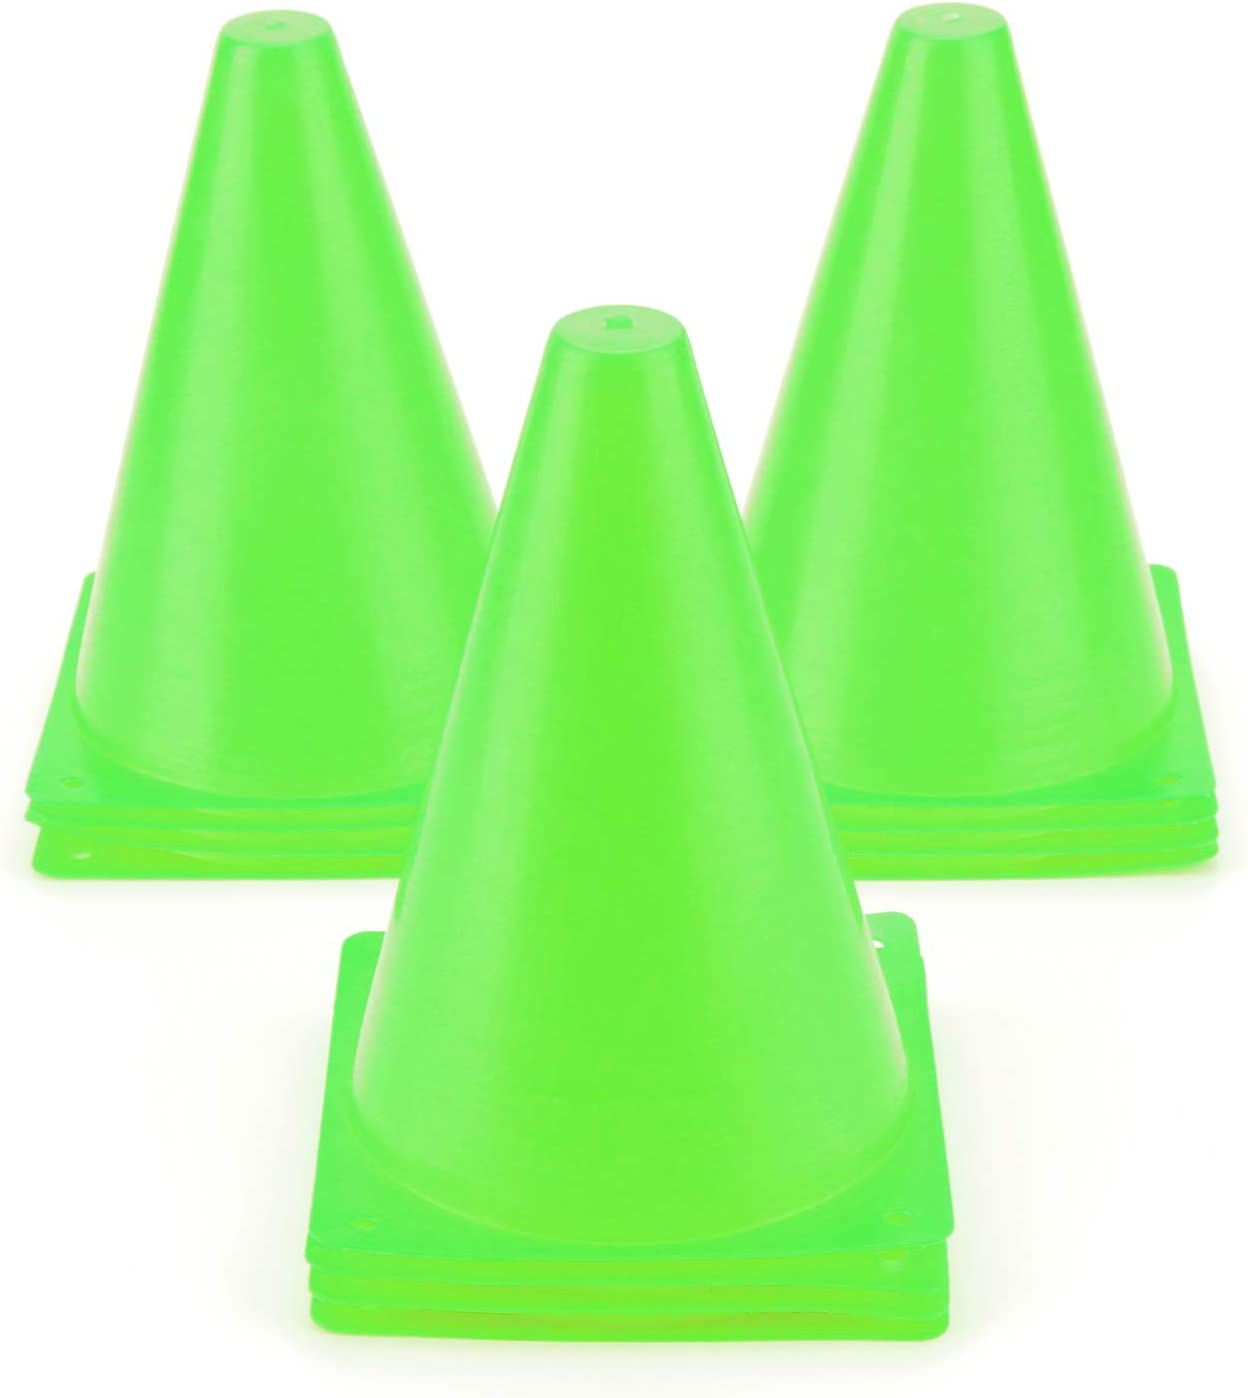 9 Inch/7.5 Inch Sports Cones, Basketball Cones, Traffic Training Cones, Agility Field Marker Cones for Soccer Football Drills Training, Outdoor Activity or Events - (Set of 10 or 12 or 24, 5 Colors)